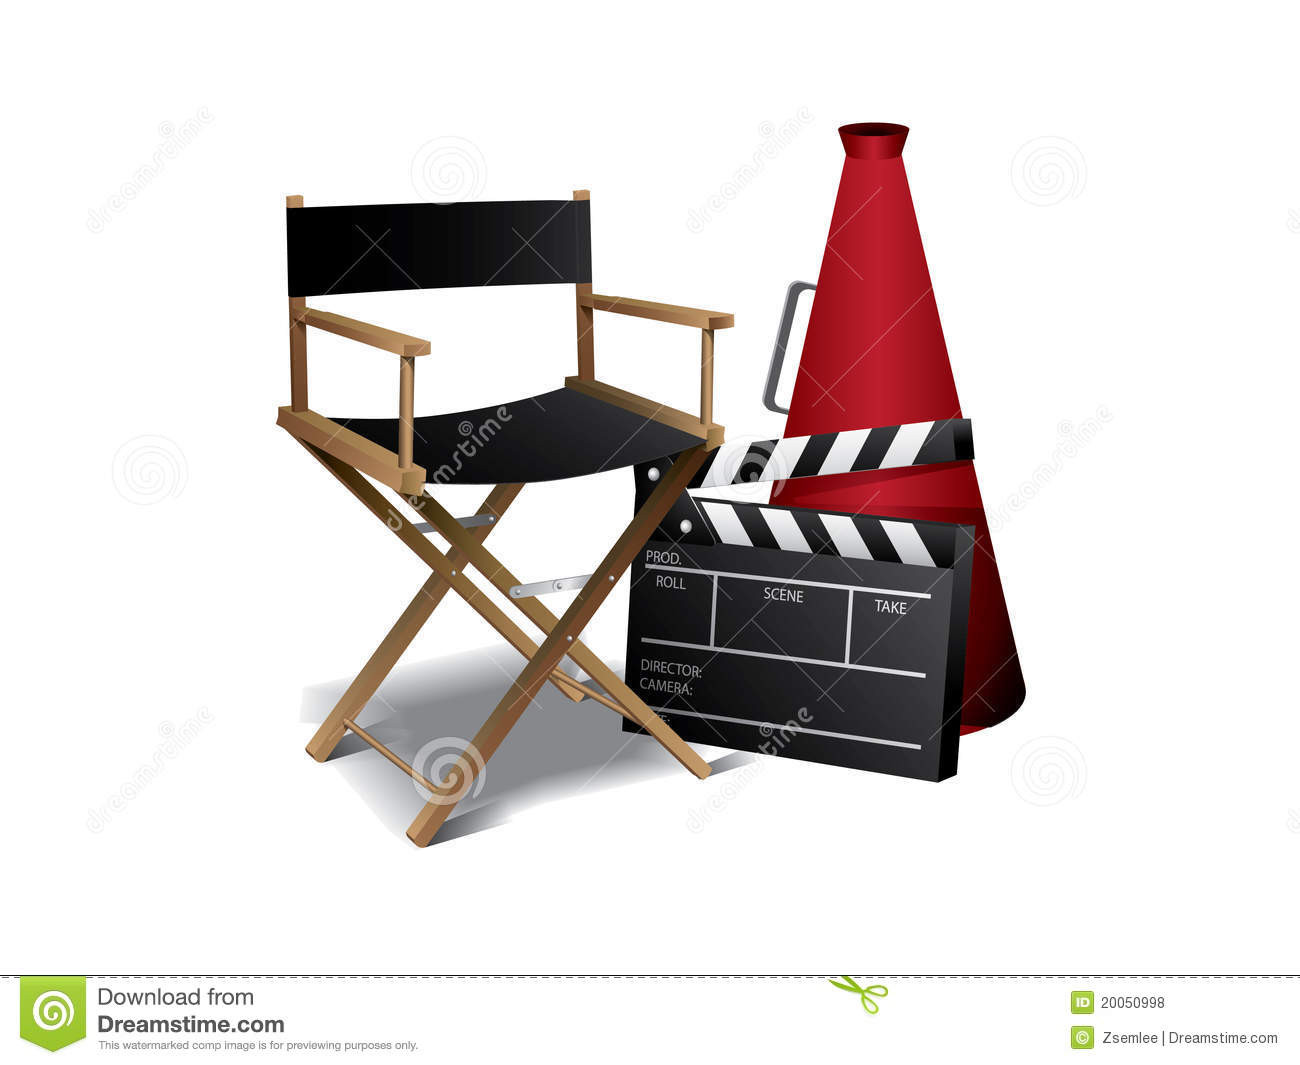 Silla De Director De Cine Gran Movie Director Chair Royalty Free Stock S Image Of Silla De Director De Cine Adorable Silla Director De Madera Tauar Color Tabaco Y Polyester